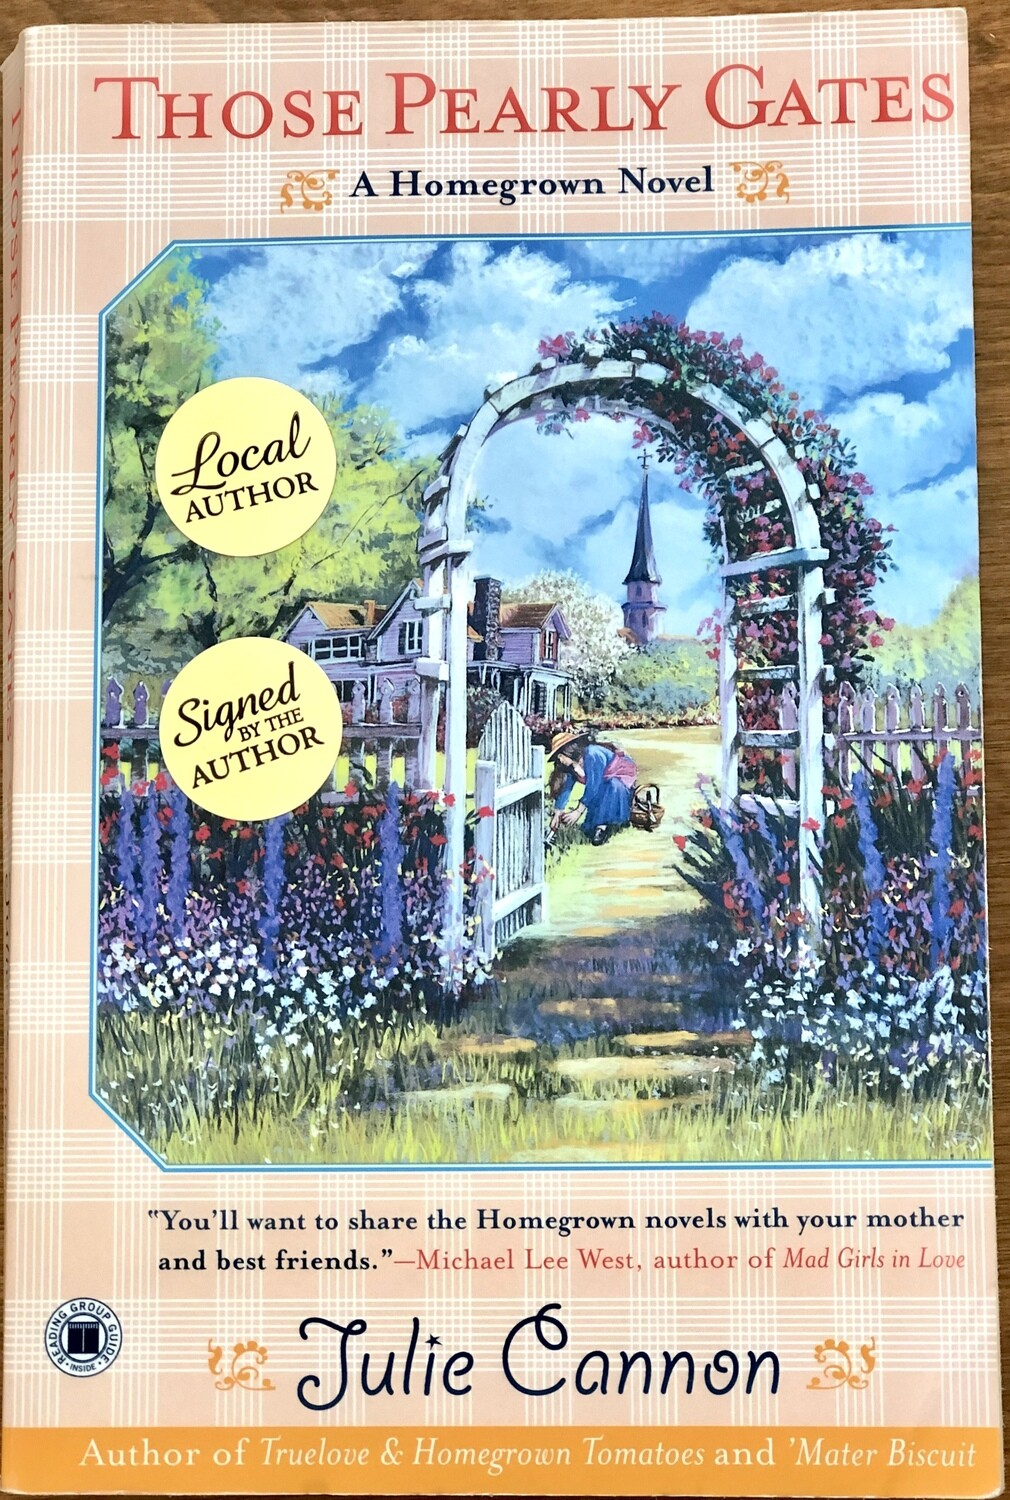 Those Pearly Gates: A Homegrown Novel by Julie Cannon Signed